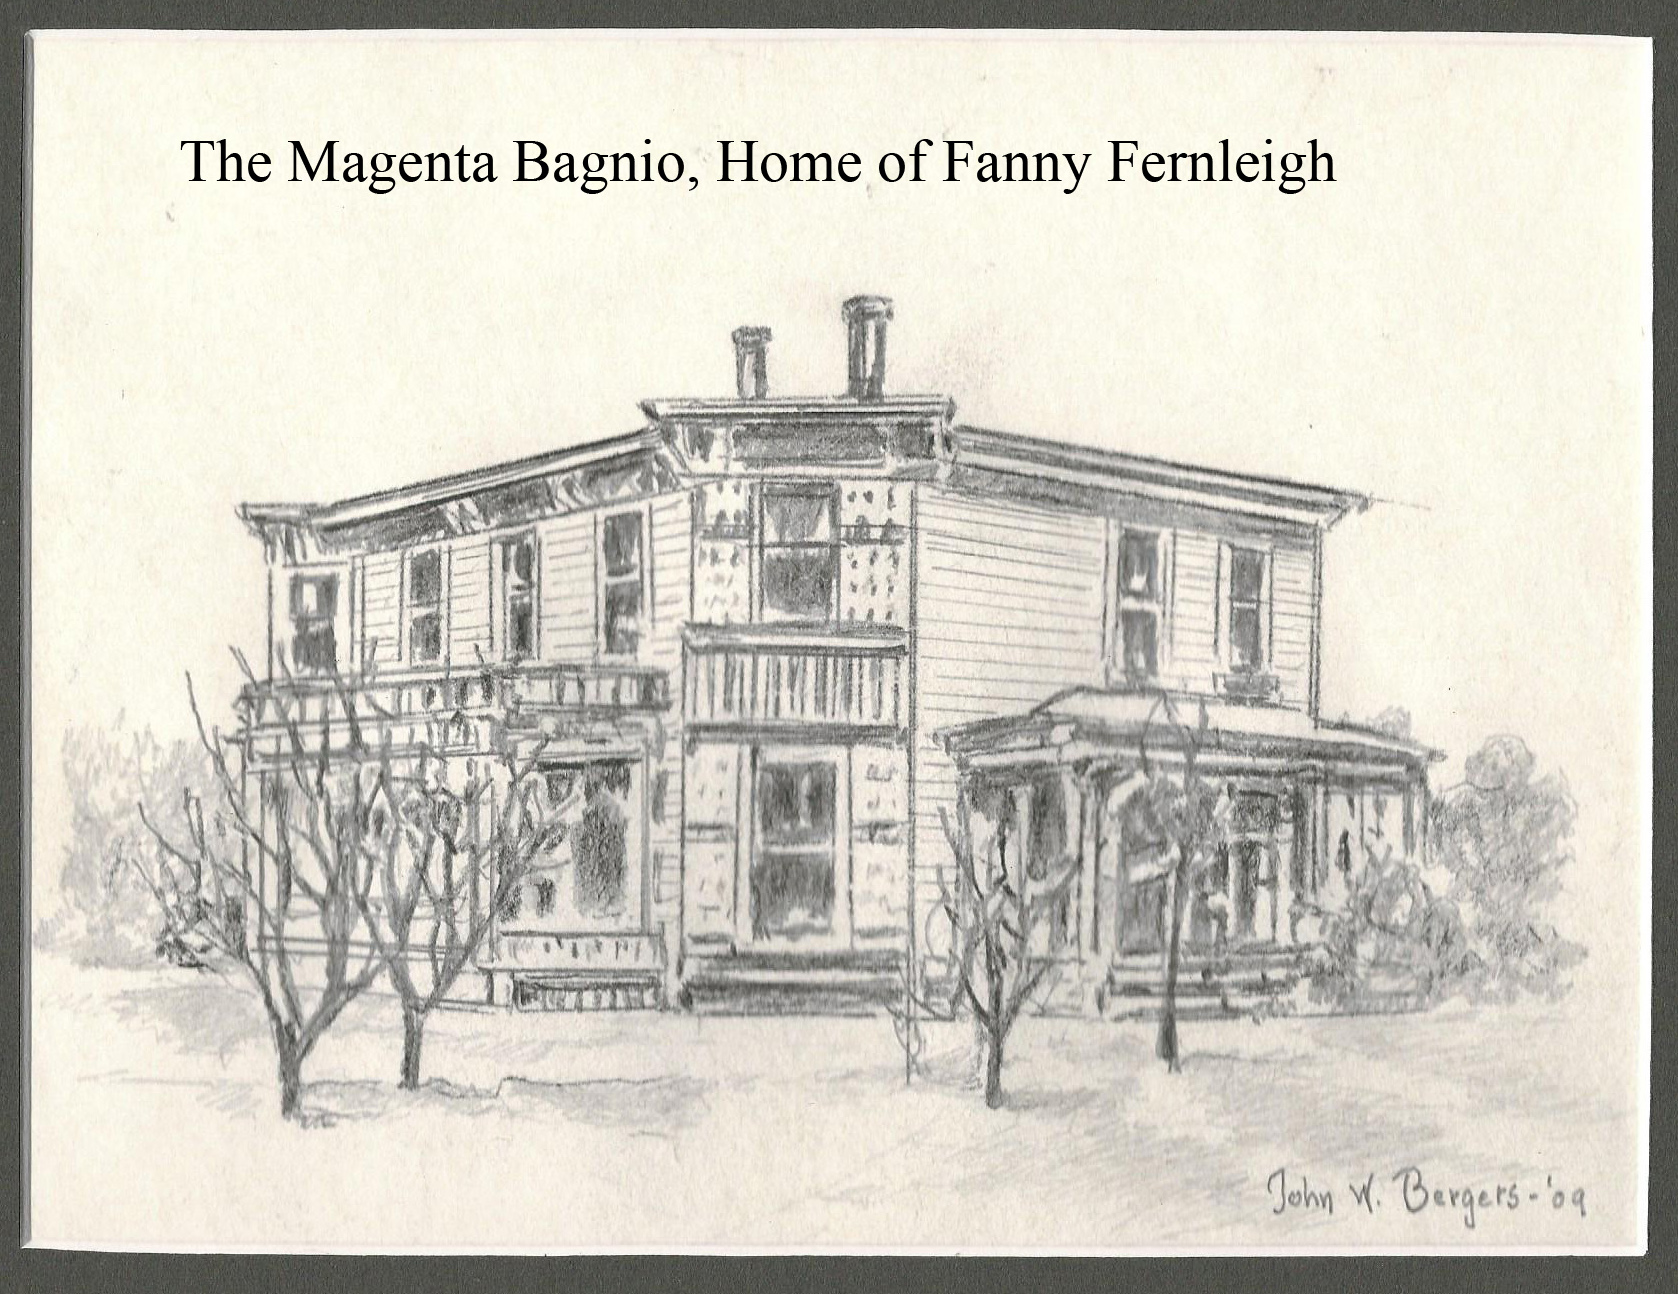 Magenta Bagnio, Home of Fanny Fernleigh copy